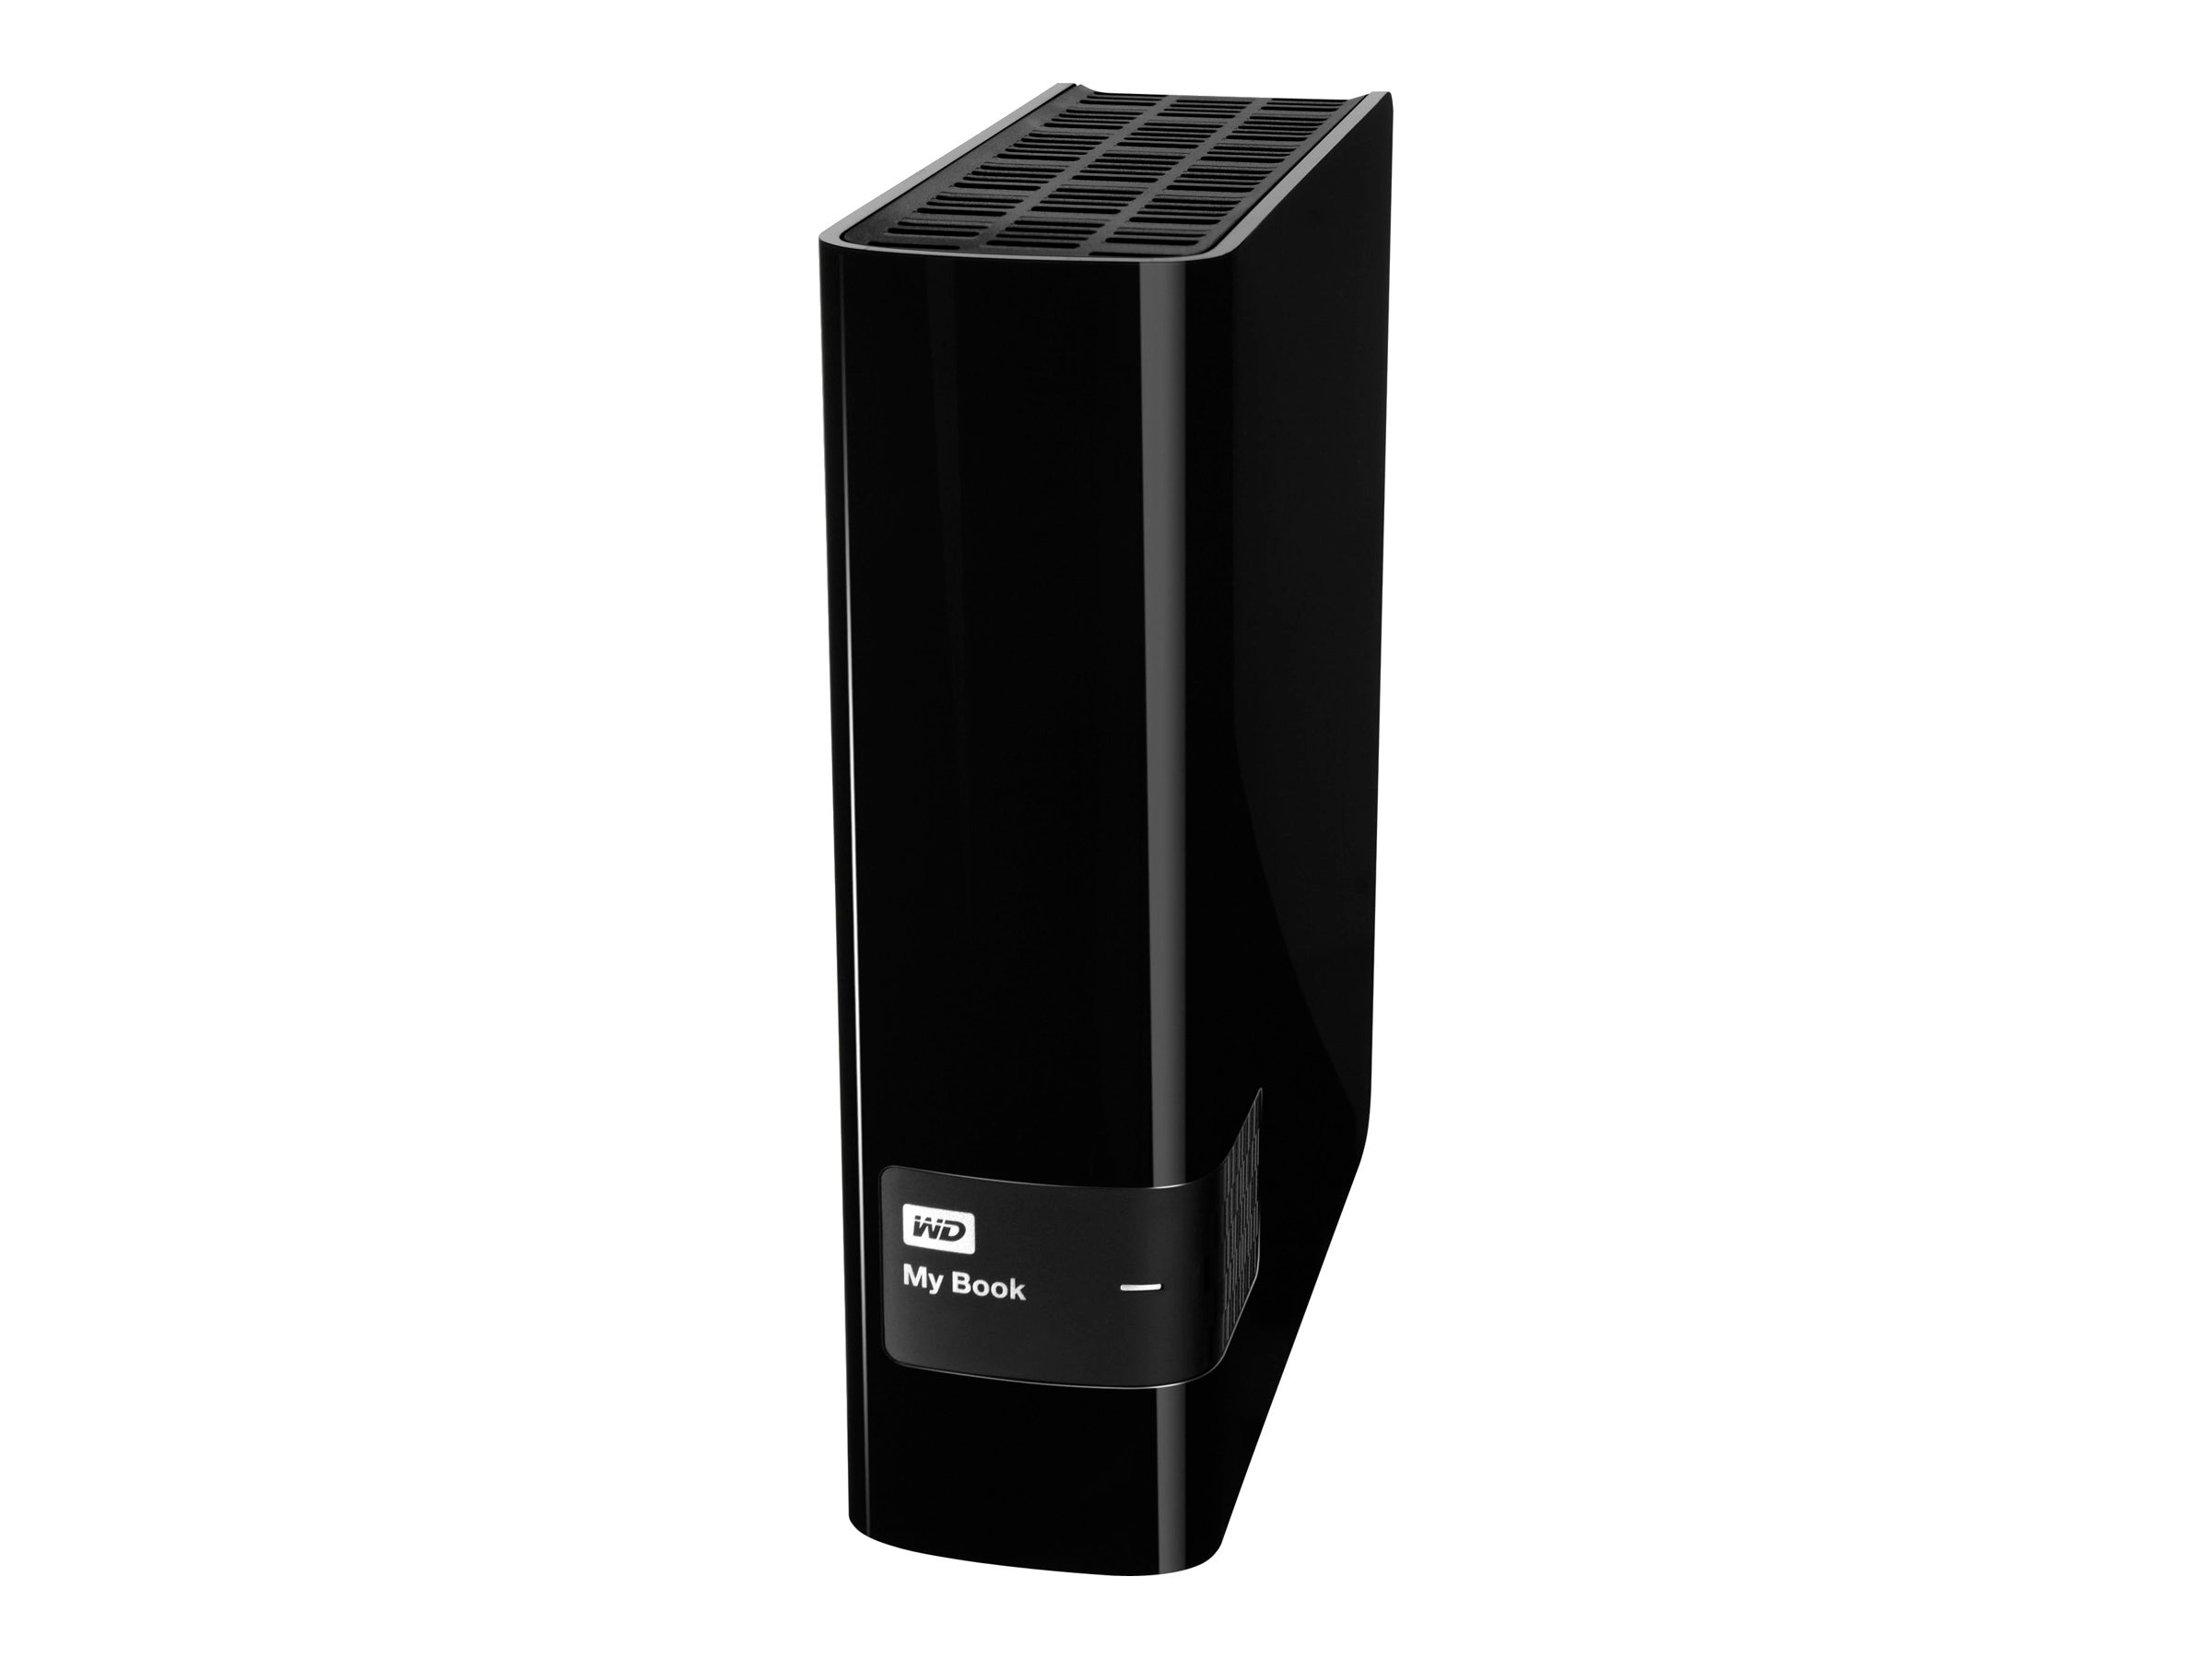 WD 4TB My Book Desktop USB 3.0 External Hard Drive, WDBFJK0040HBK-NESN, 16233167, Hard Drives - External